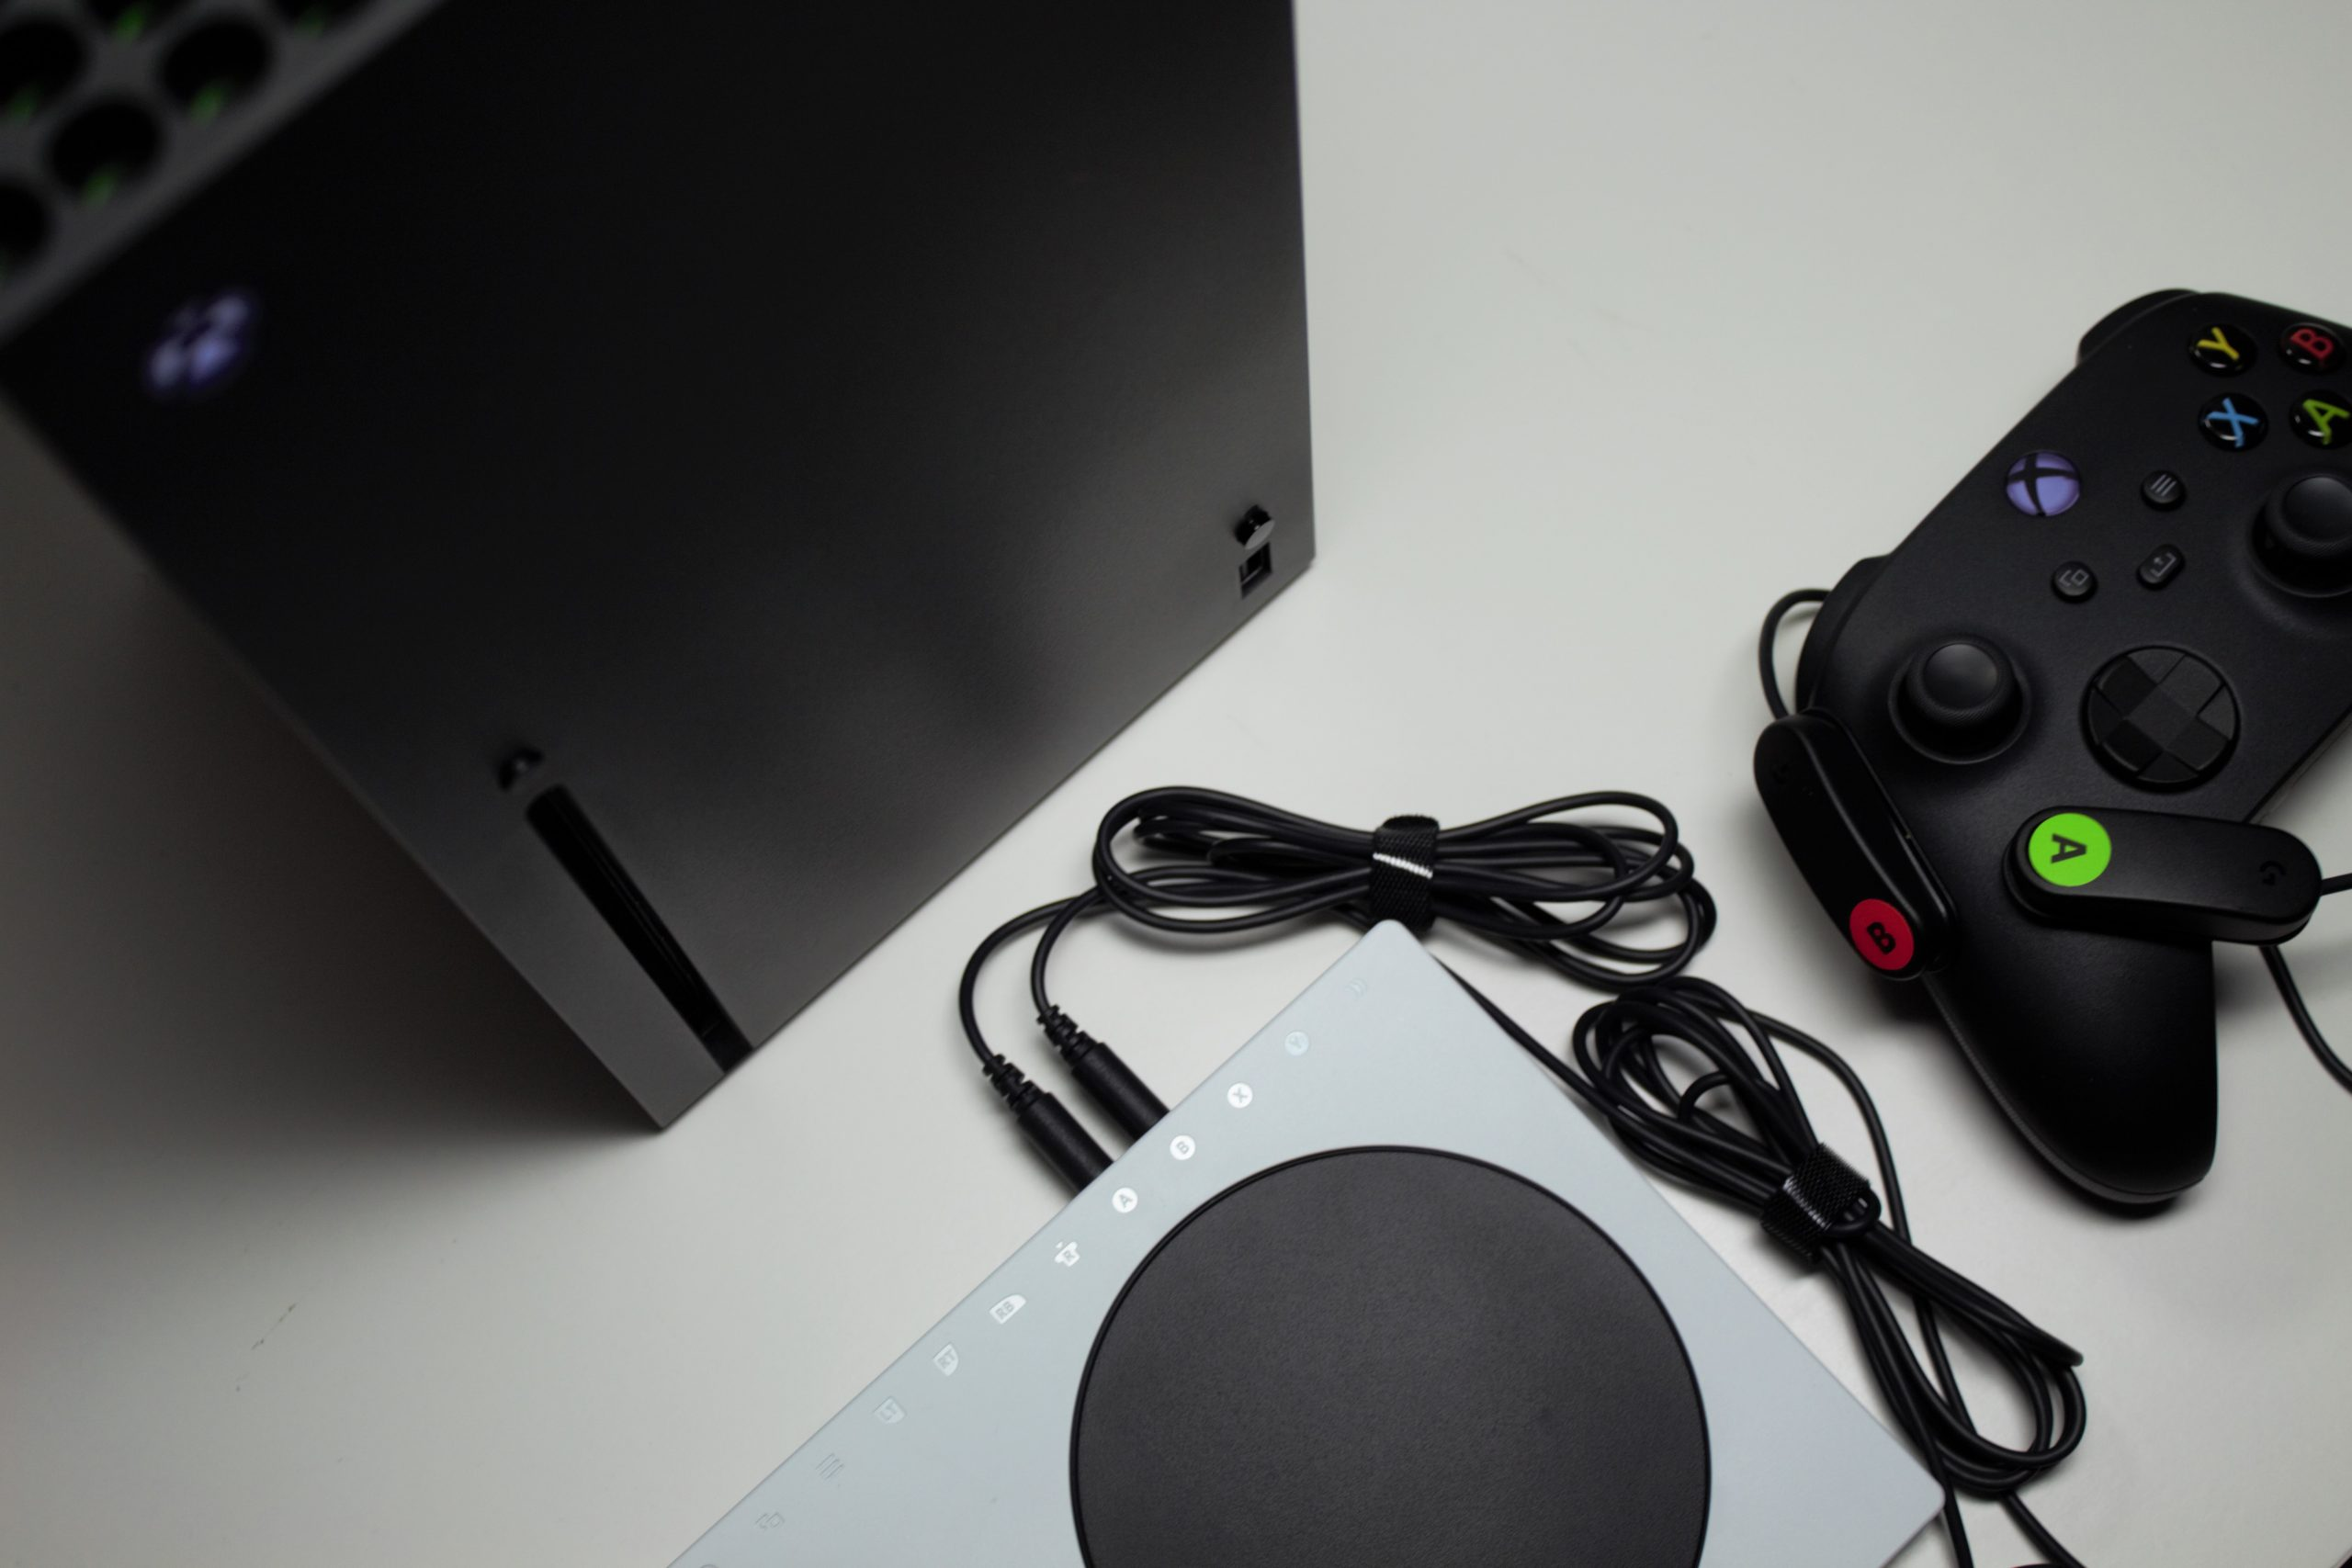 Photo showing Xbox Series X with an XAC and Standard Controller with two Logitech switches attached to the controller labelled A and B.